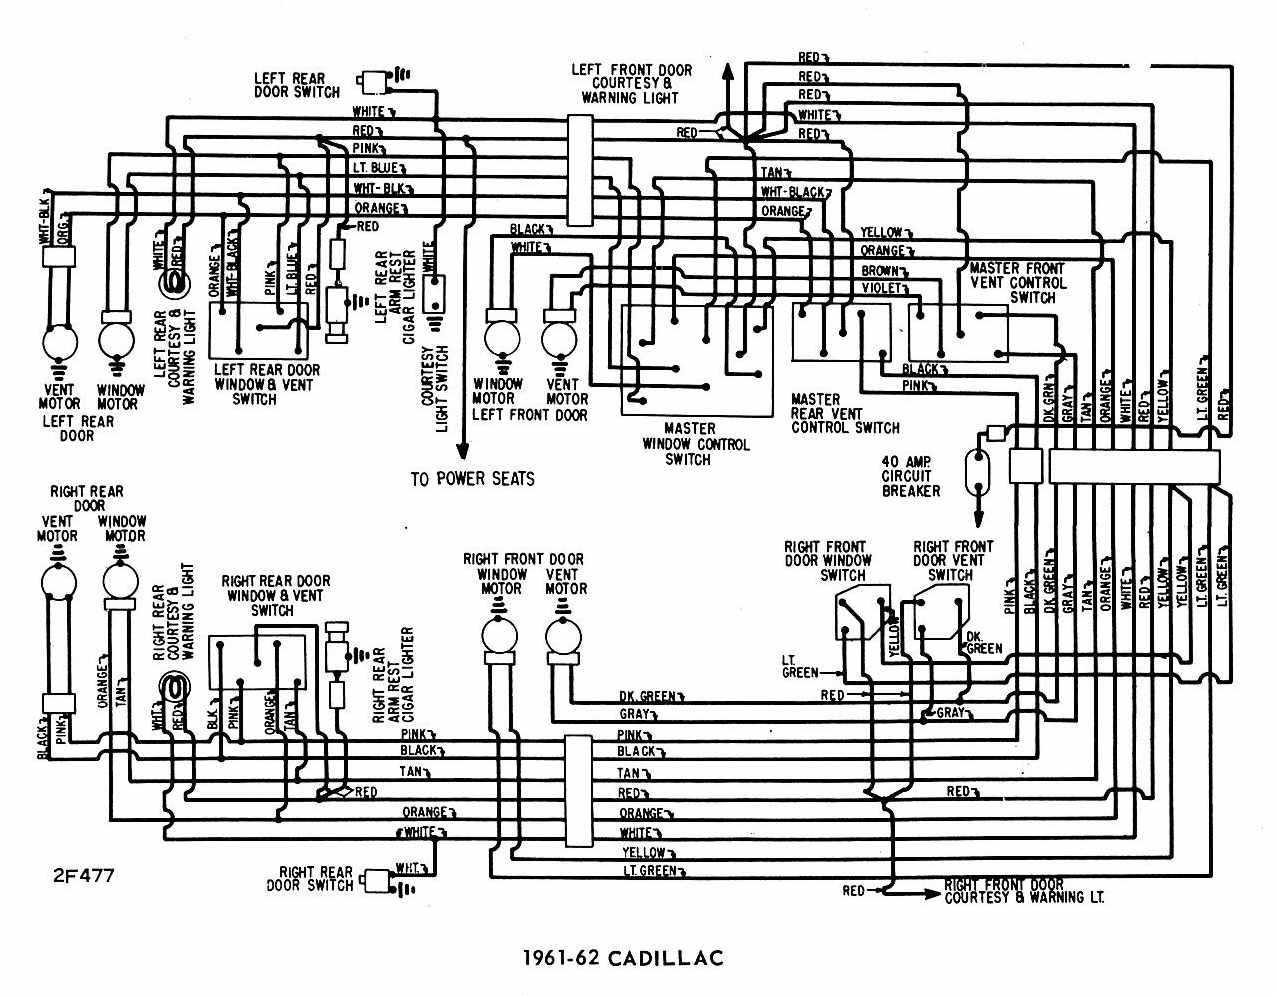 97 Cadillac Deville Fuse Box Diagram Simple Guide About Wiring 1993 Buick Regal Sts In The Back Seat 1997